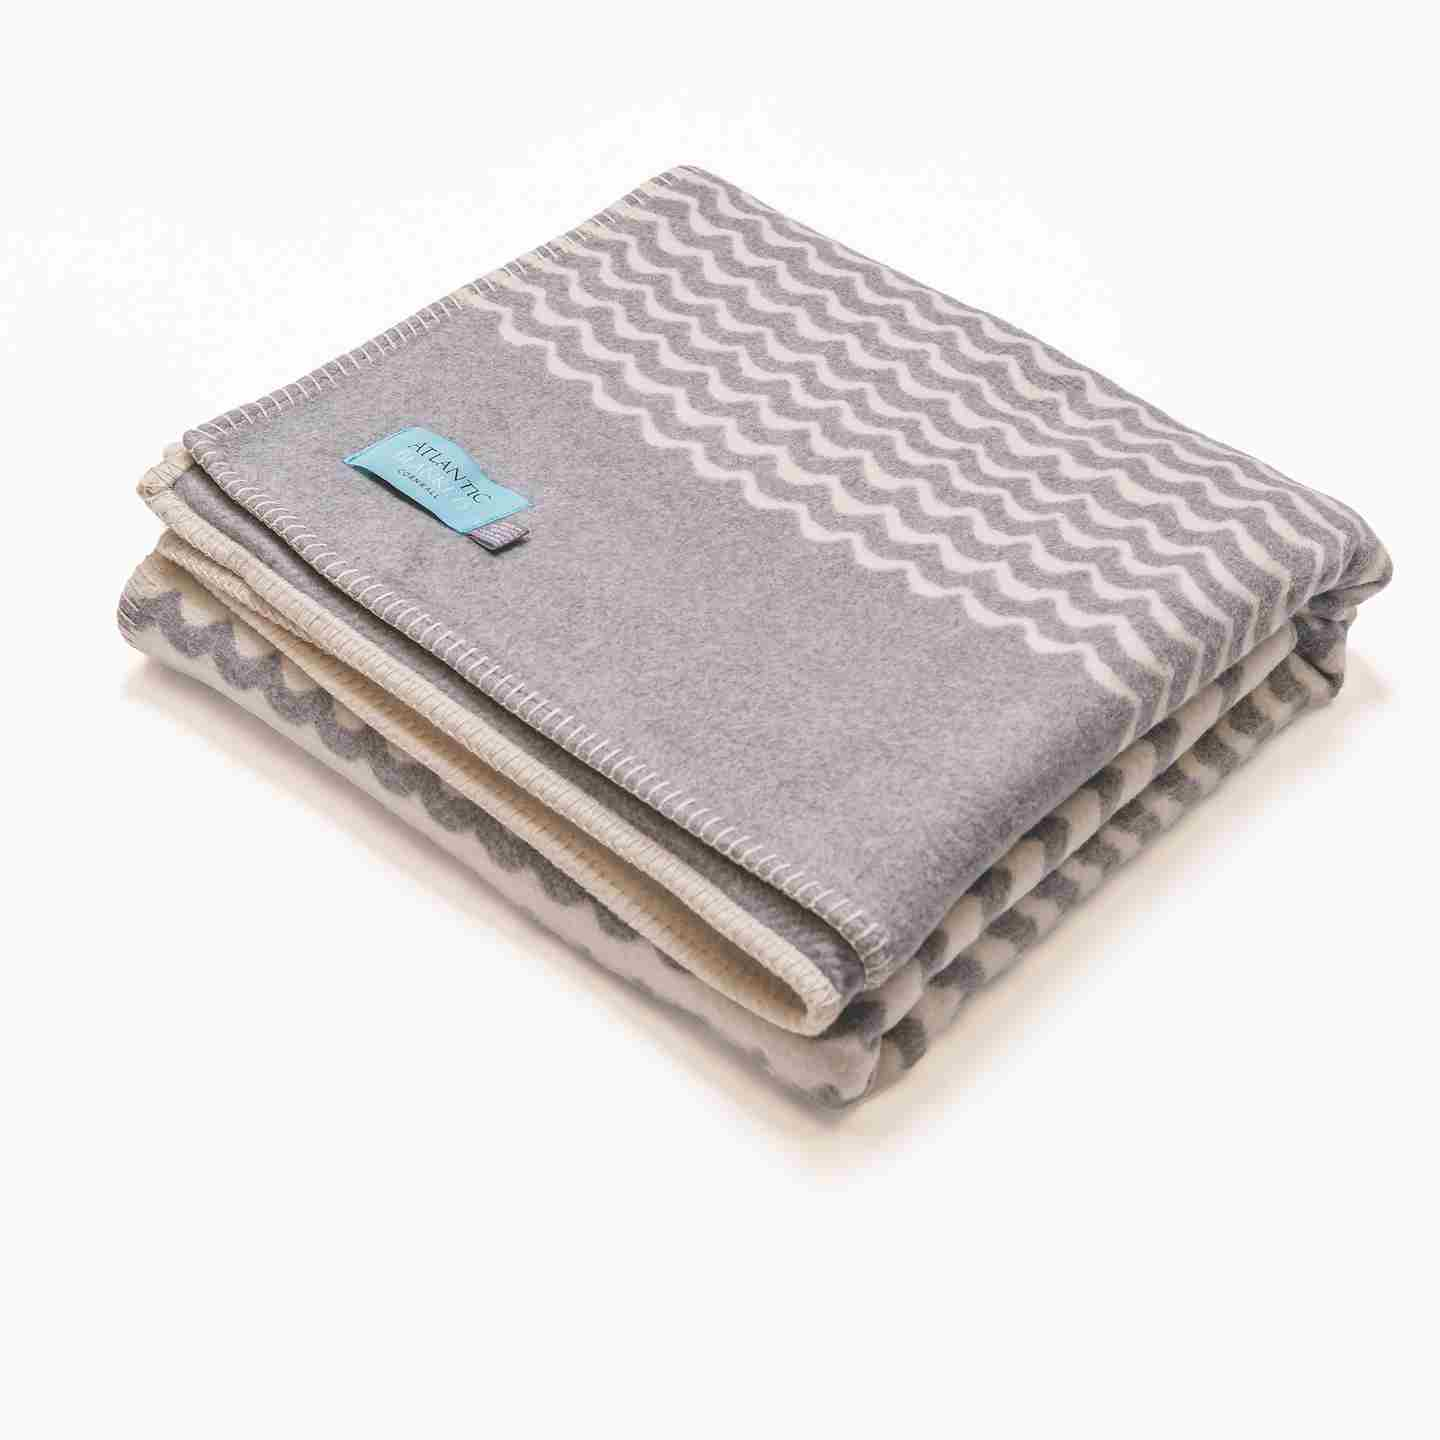 Grey Swell Brushed Cotton Blanket King Size